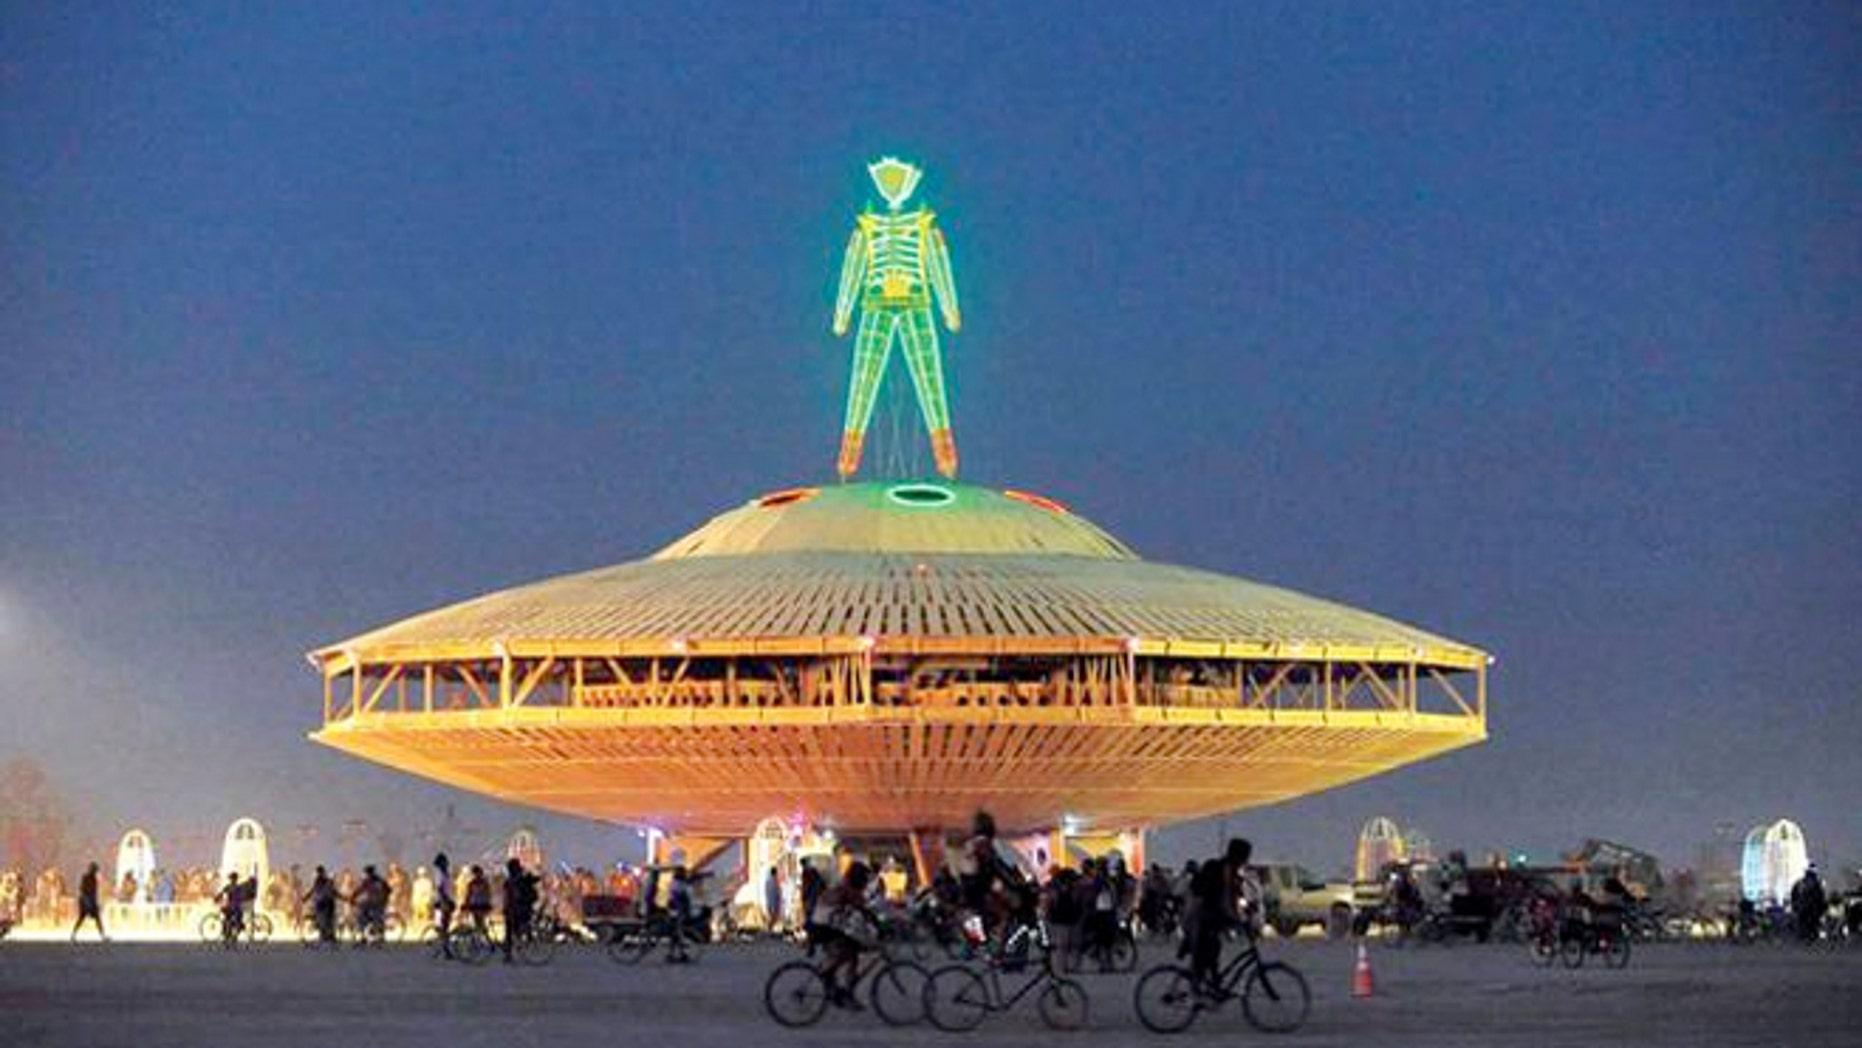 The fest, which started in 1990 at Black Rock Desert, attracts tens of thousands of loyal attendees each year for the music, art and massive sculptures that are burned at the end of the event.